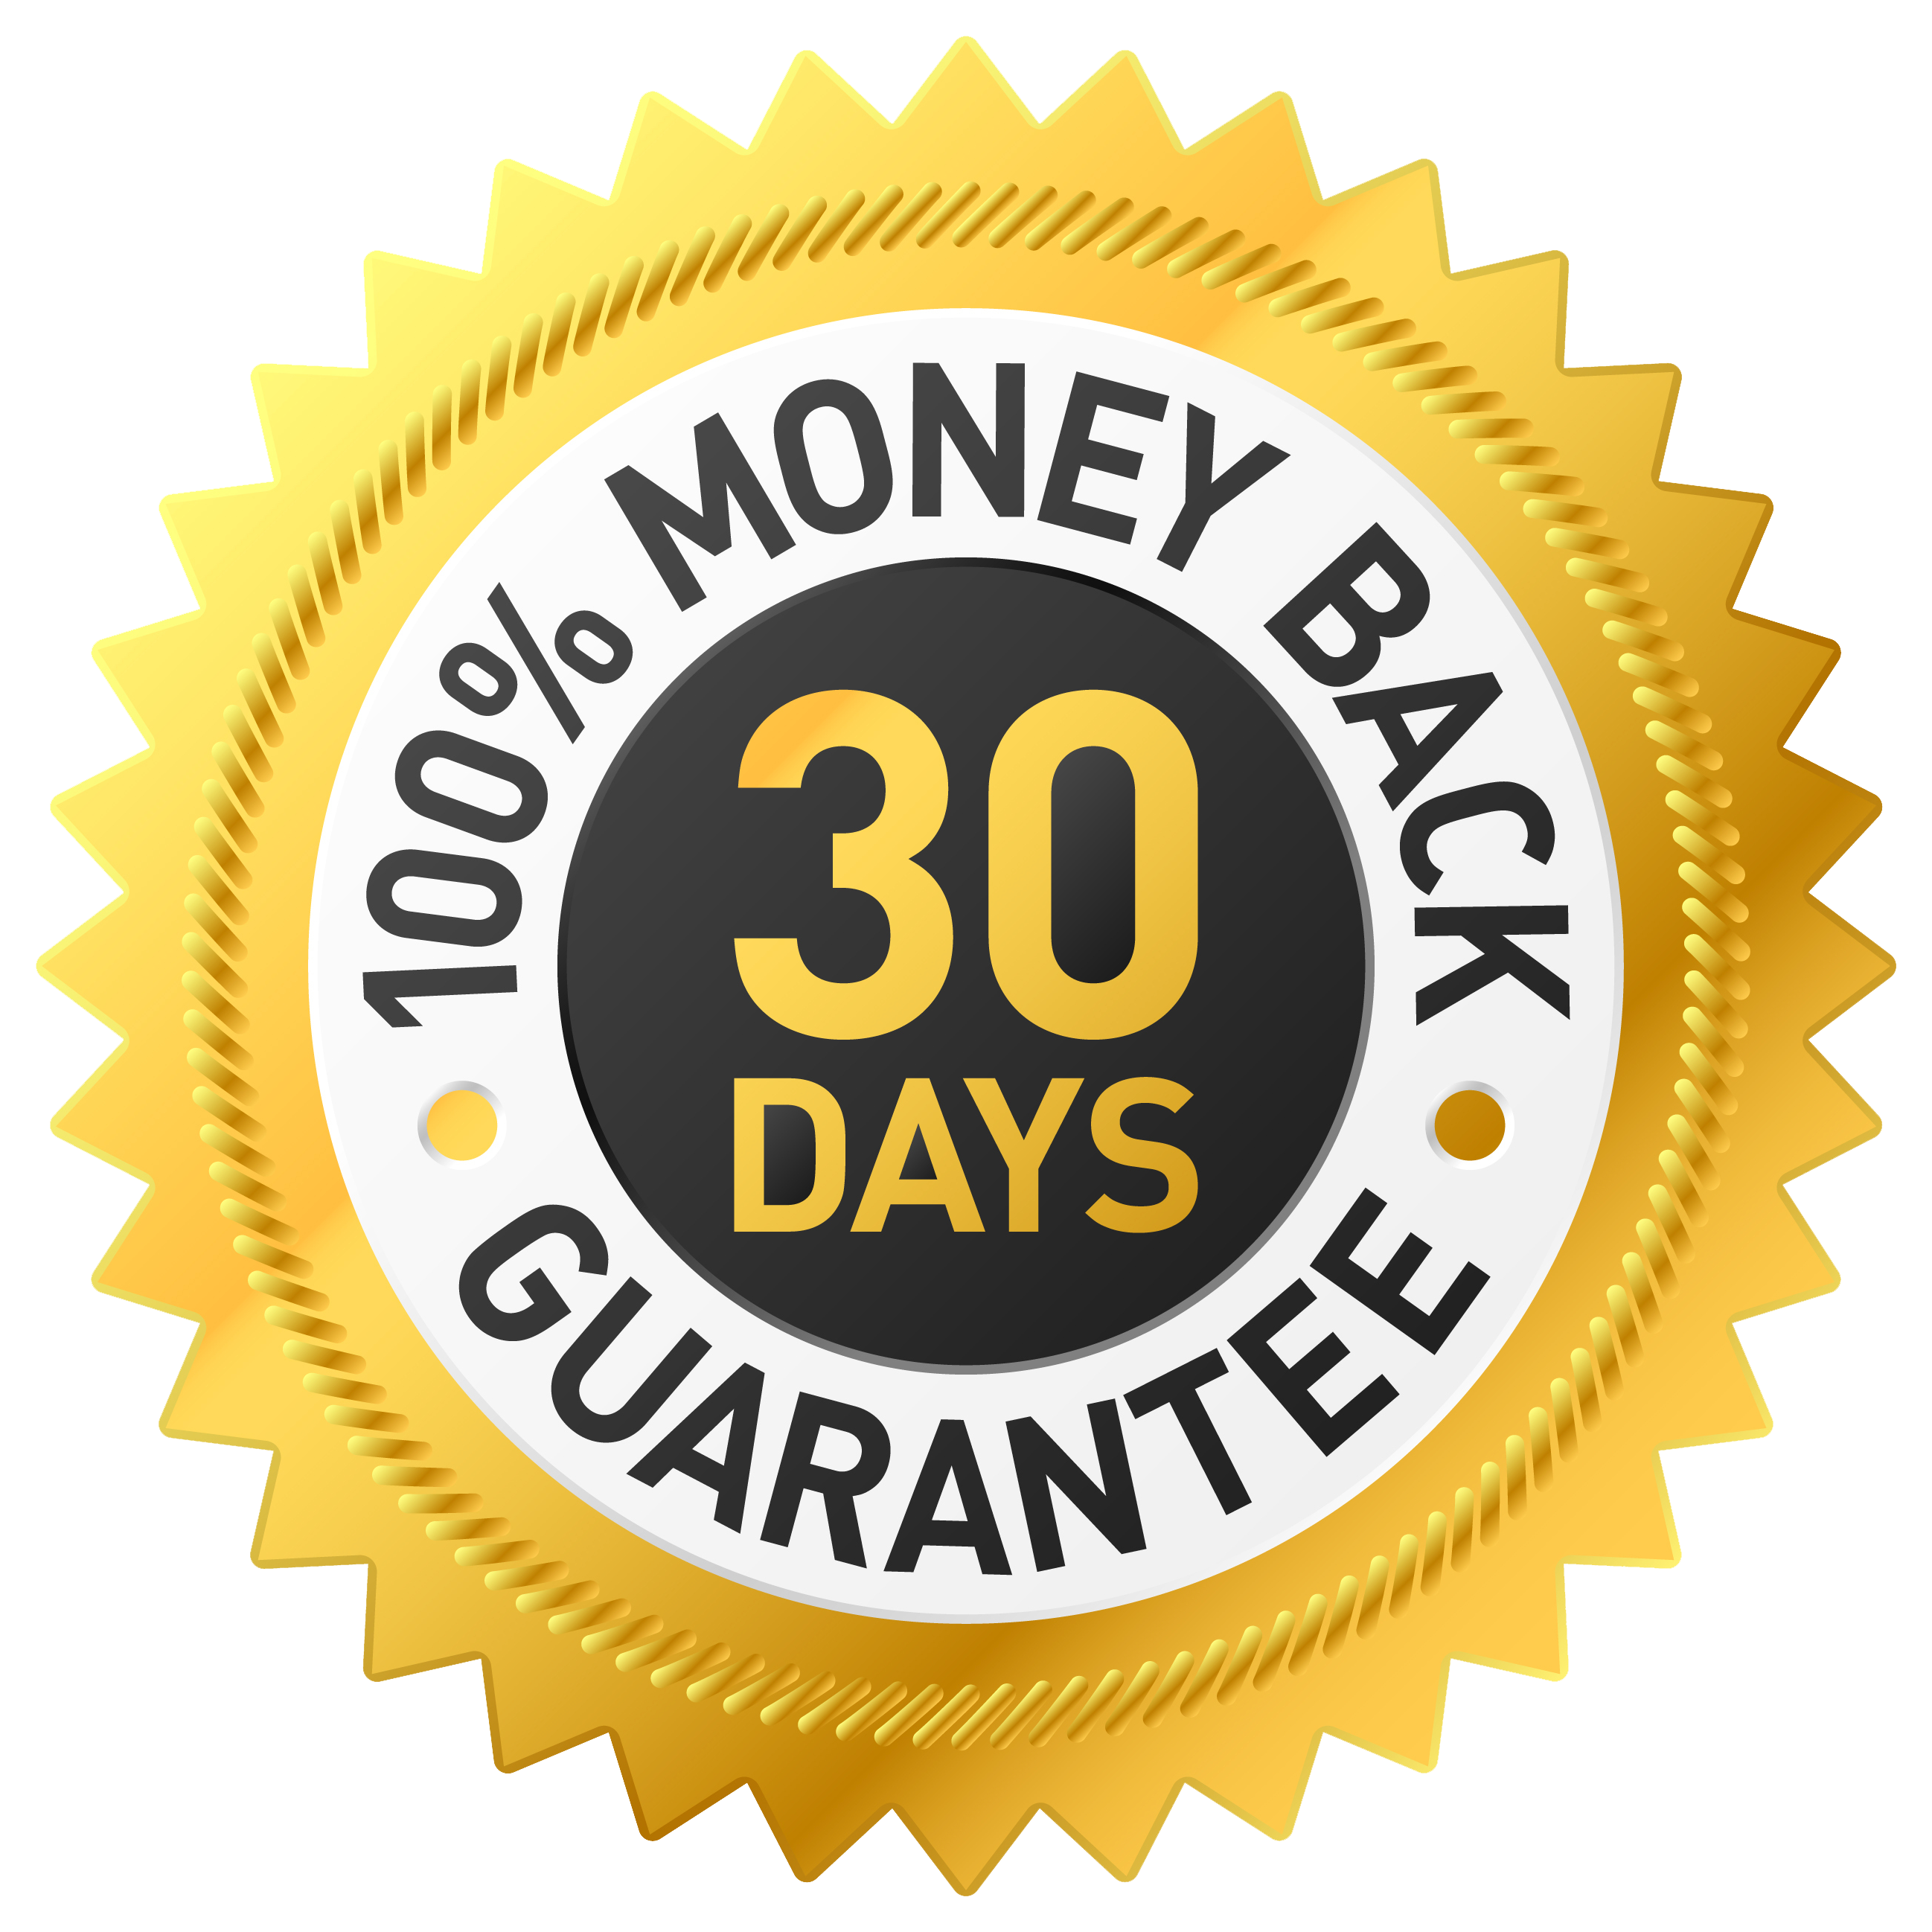 100% Money-Back 30-Day Guarantee